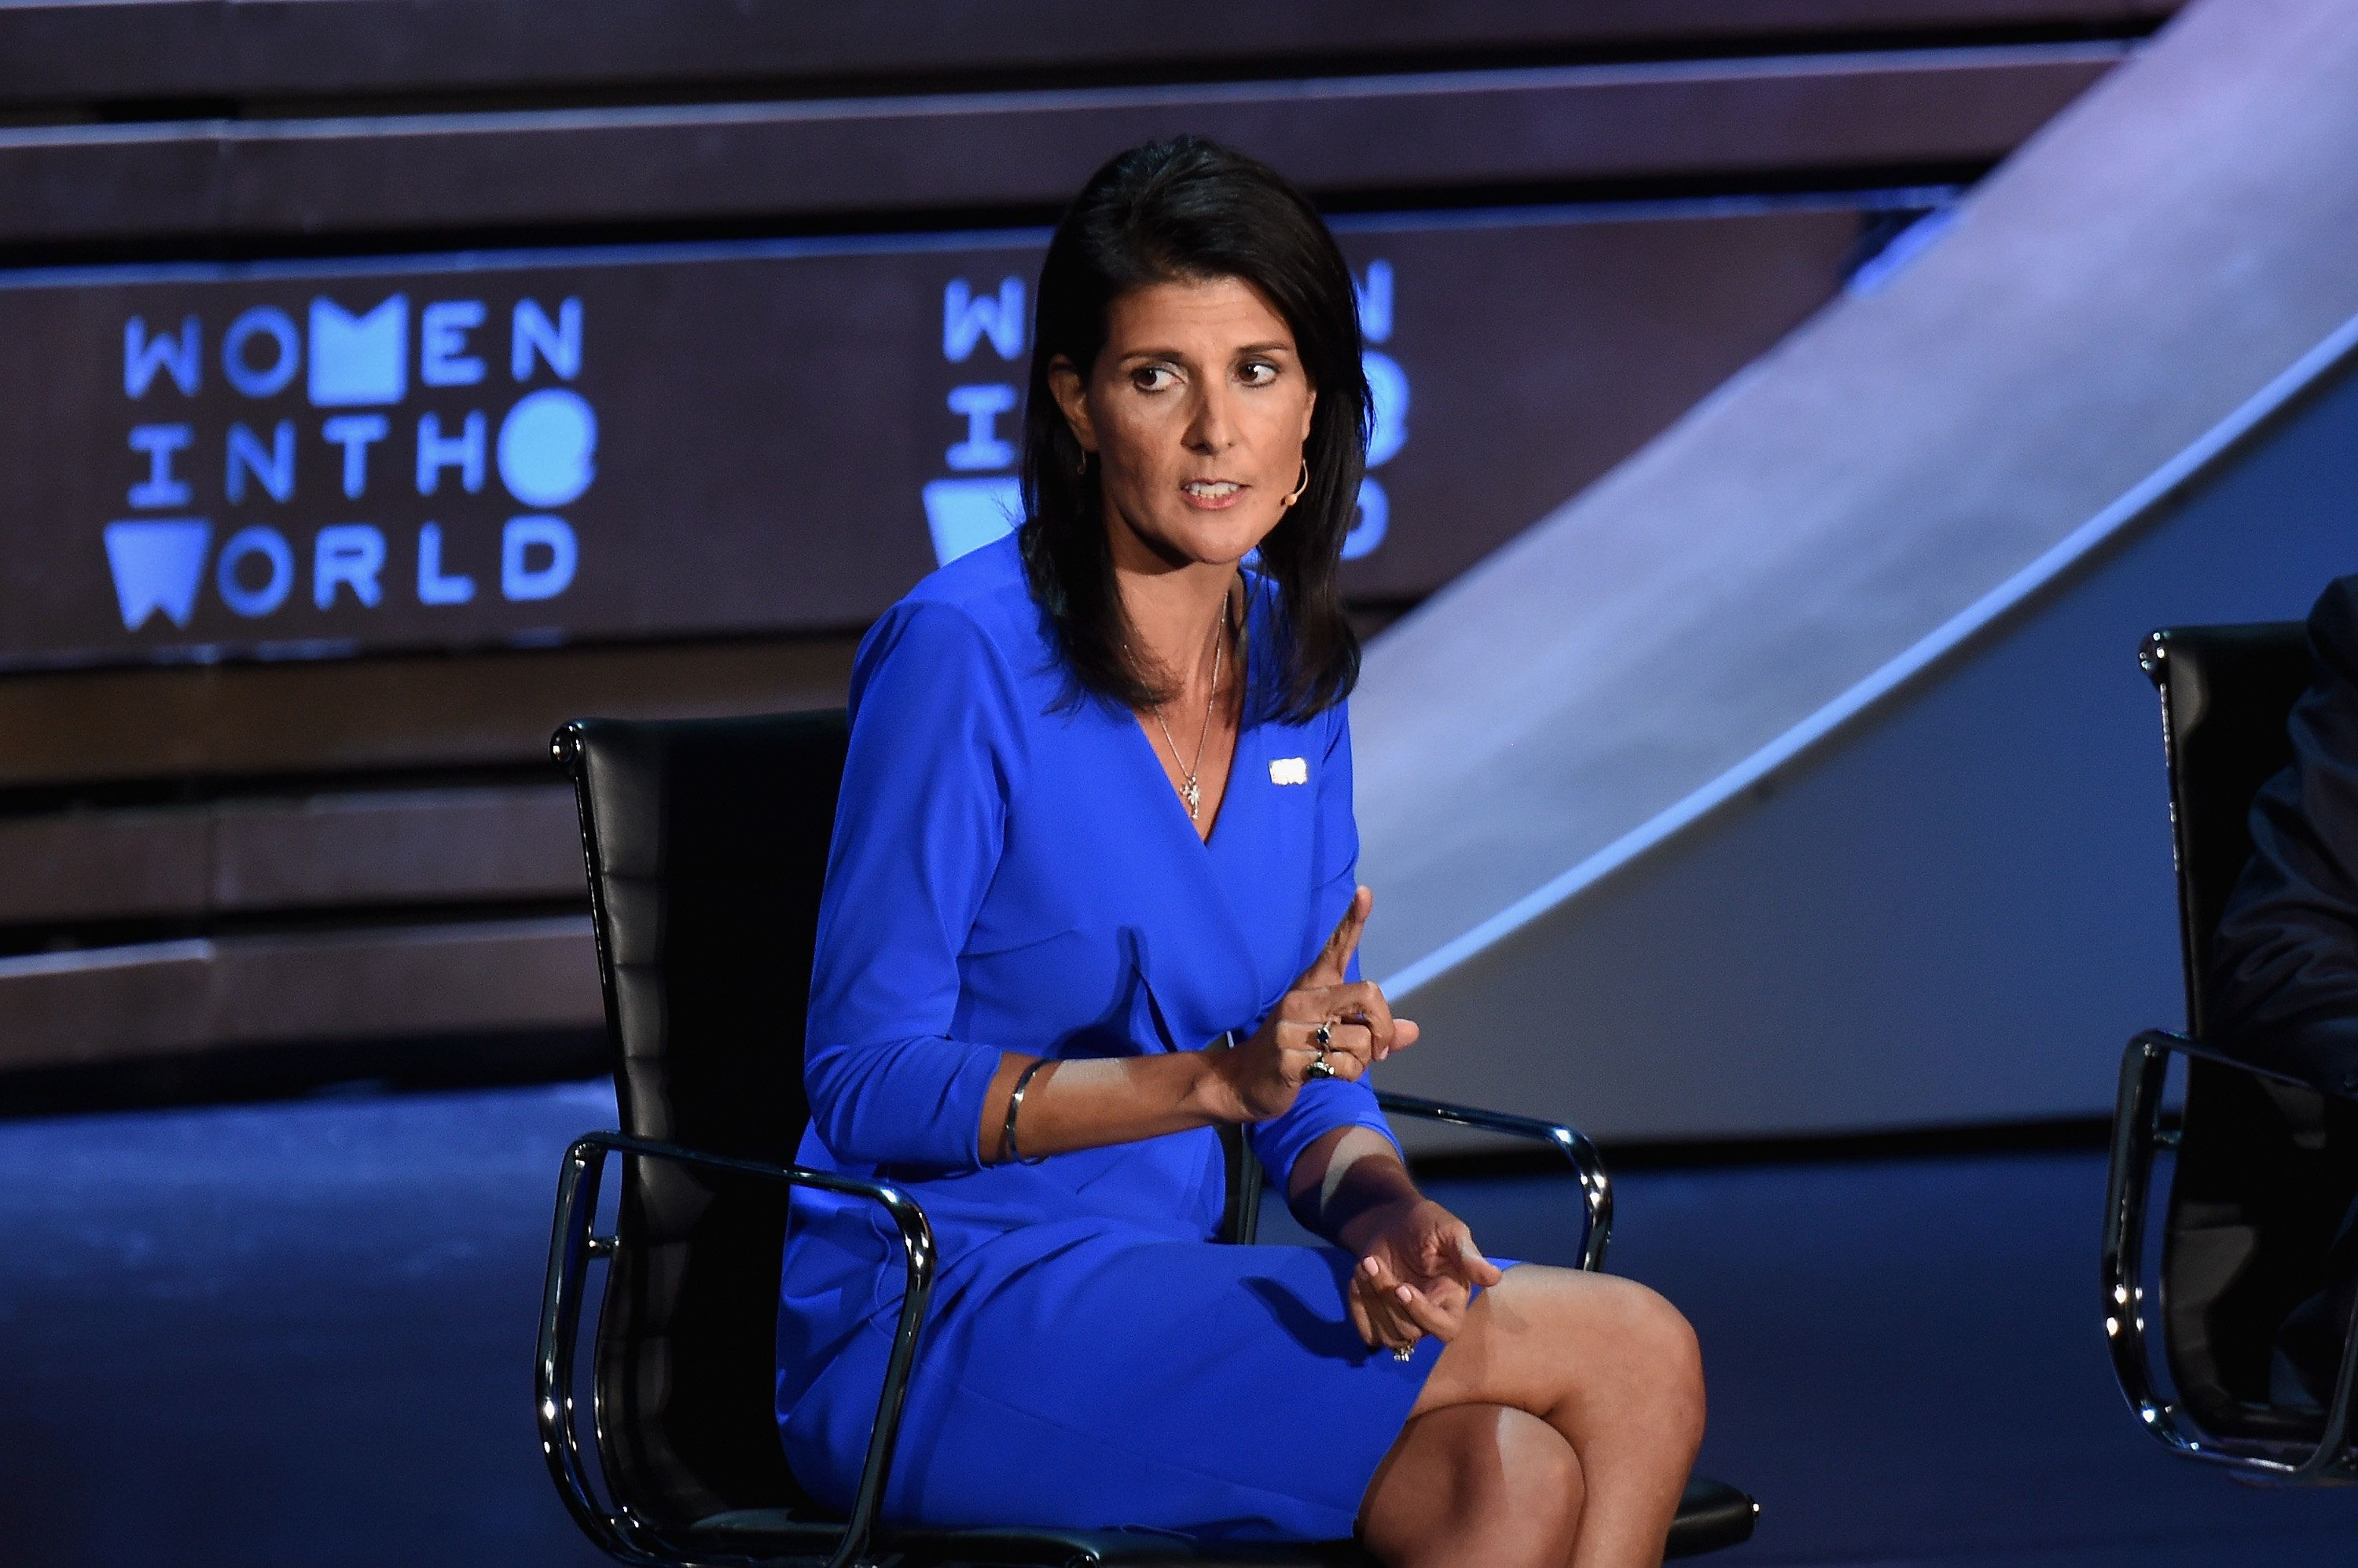 NEW YORK, NY - APRIL 05:  United States Ambassador to the United Nations, Nikki Haley speaks during the Eighth Annual Women In The World Summit at Lincoln Center for the Performing Arts on April 5, 2017 in New York City.  (Photo by Michael Loccisano/Getty Images)